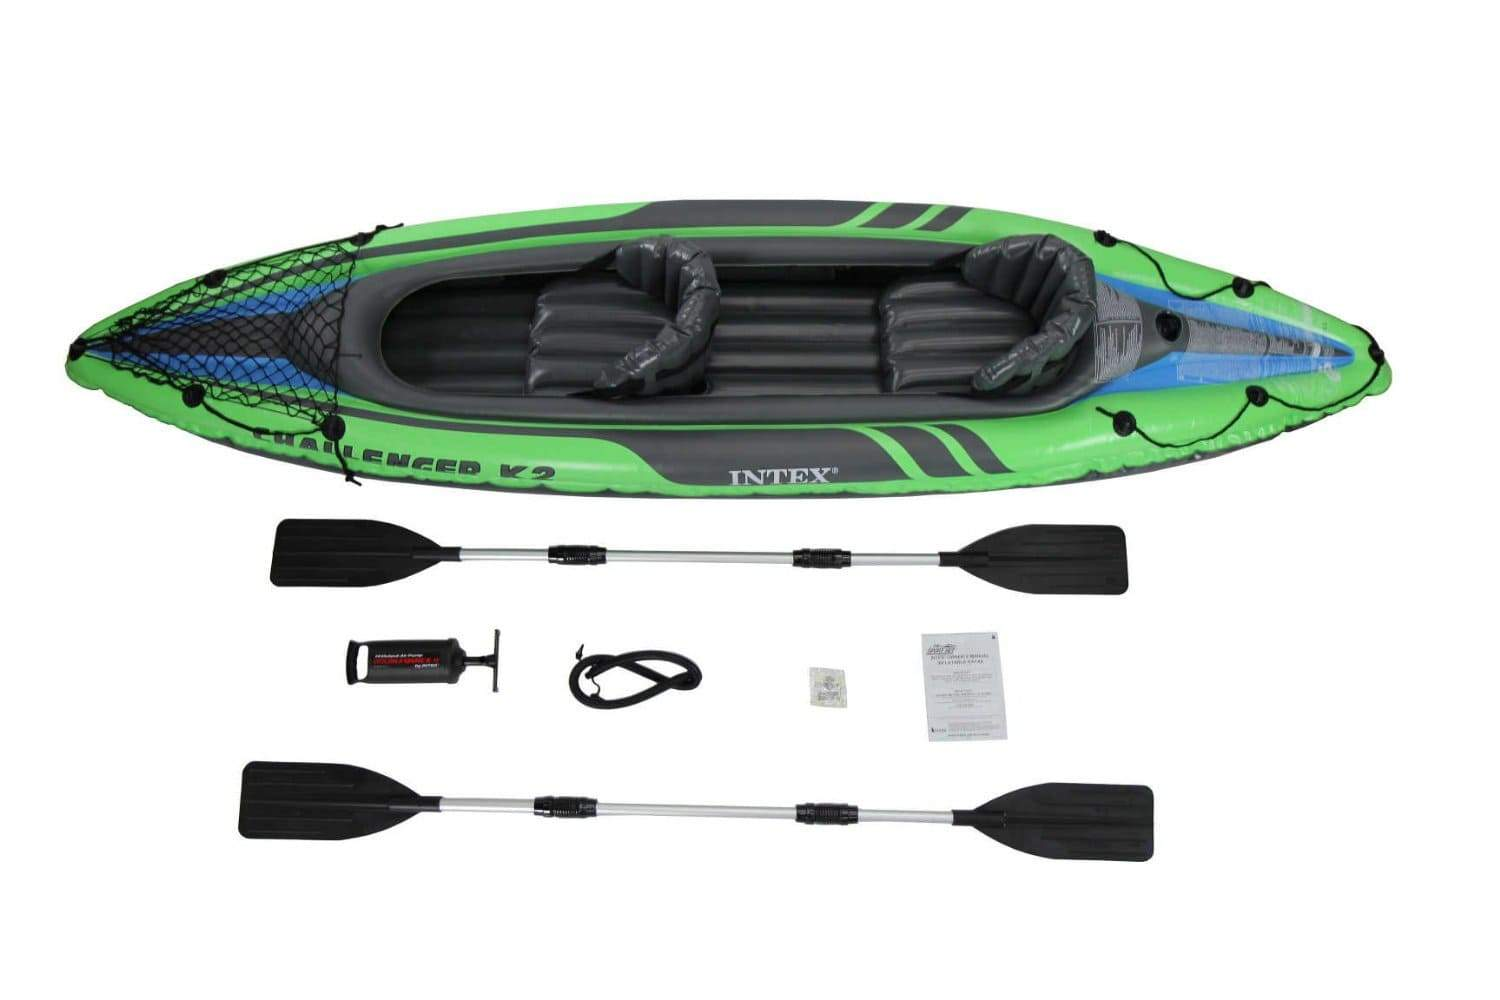 Intex Challenger K2 Kayak | Specifications, Features, Pros & Cons | Complete Review